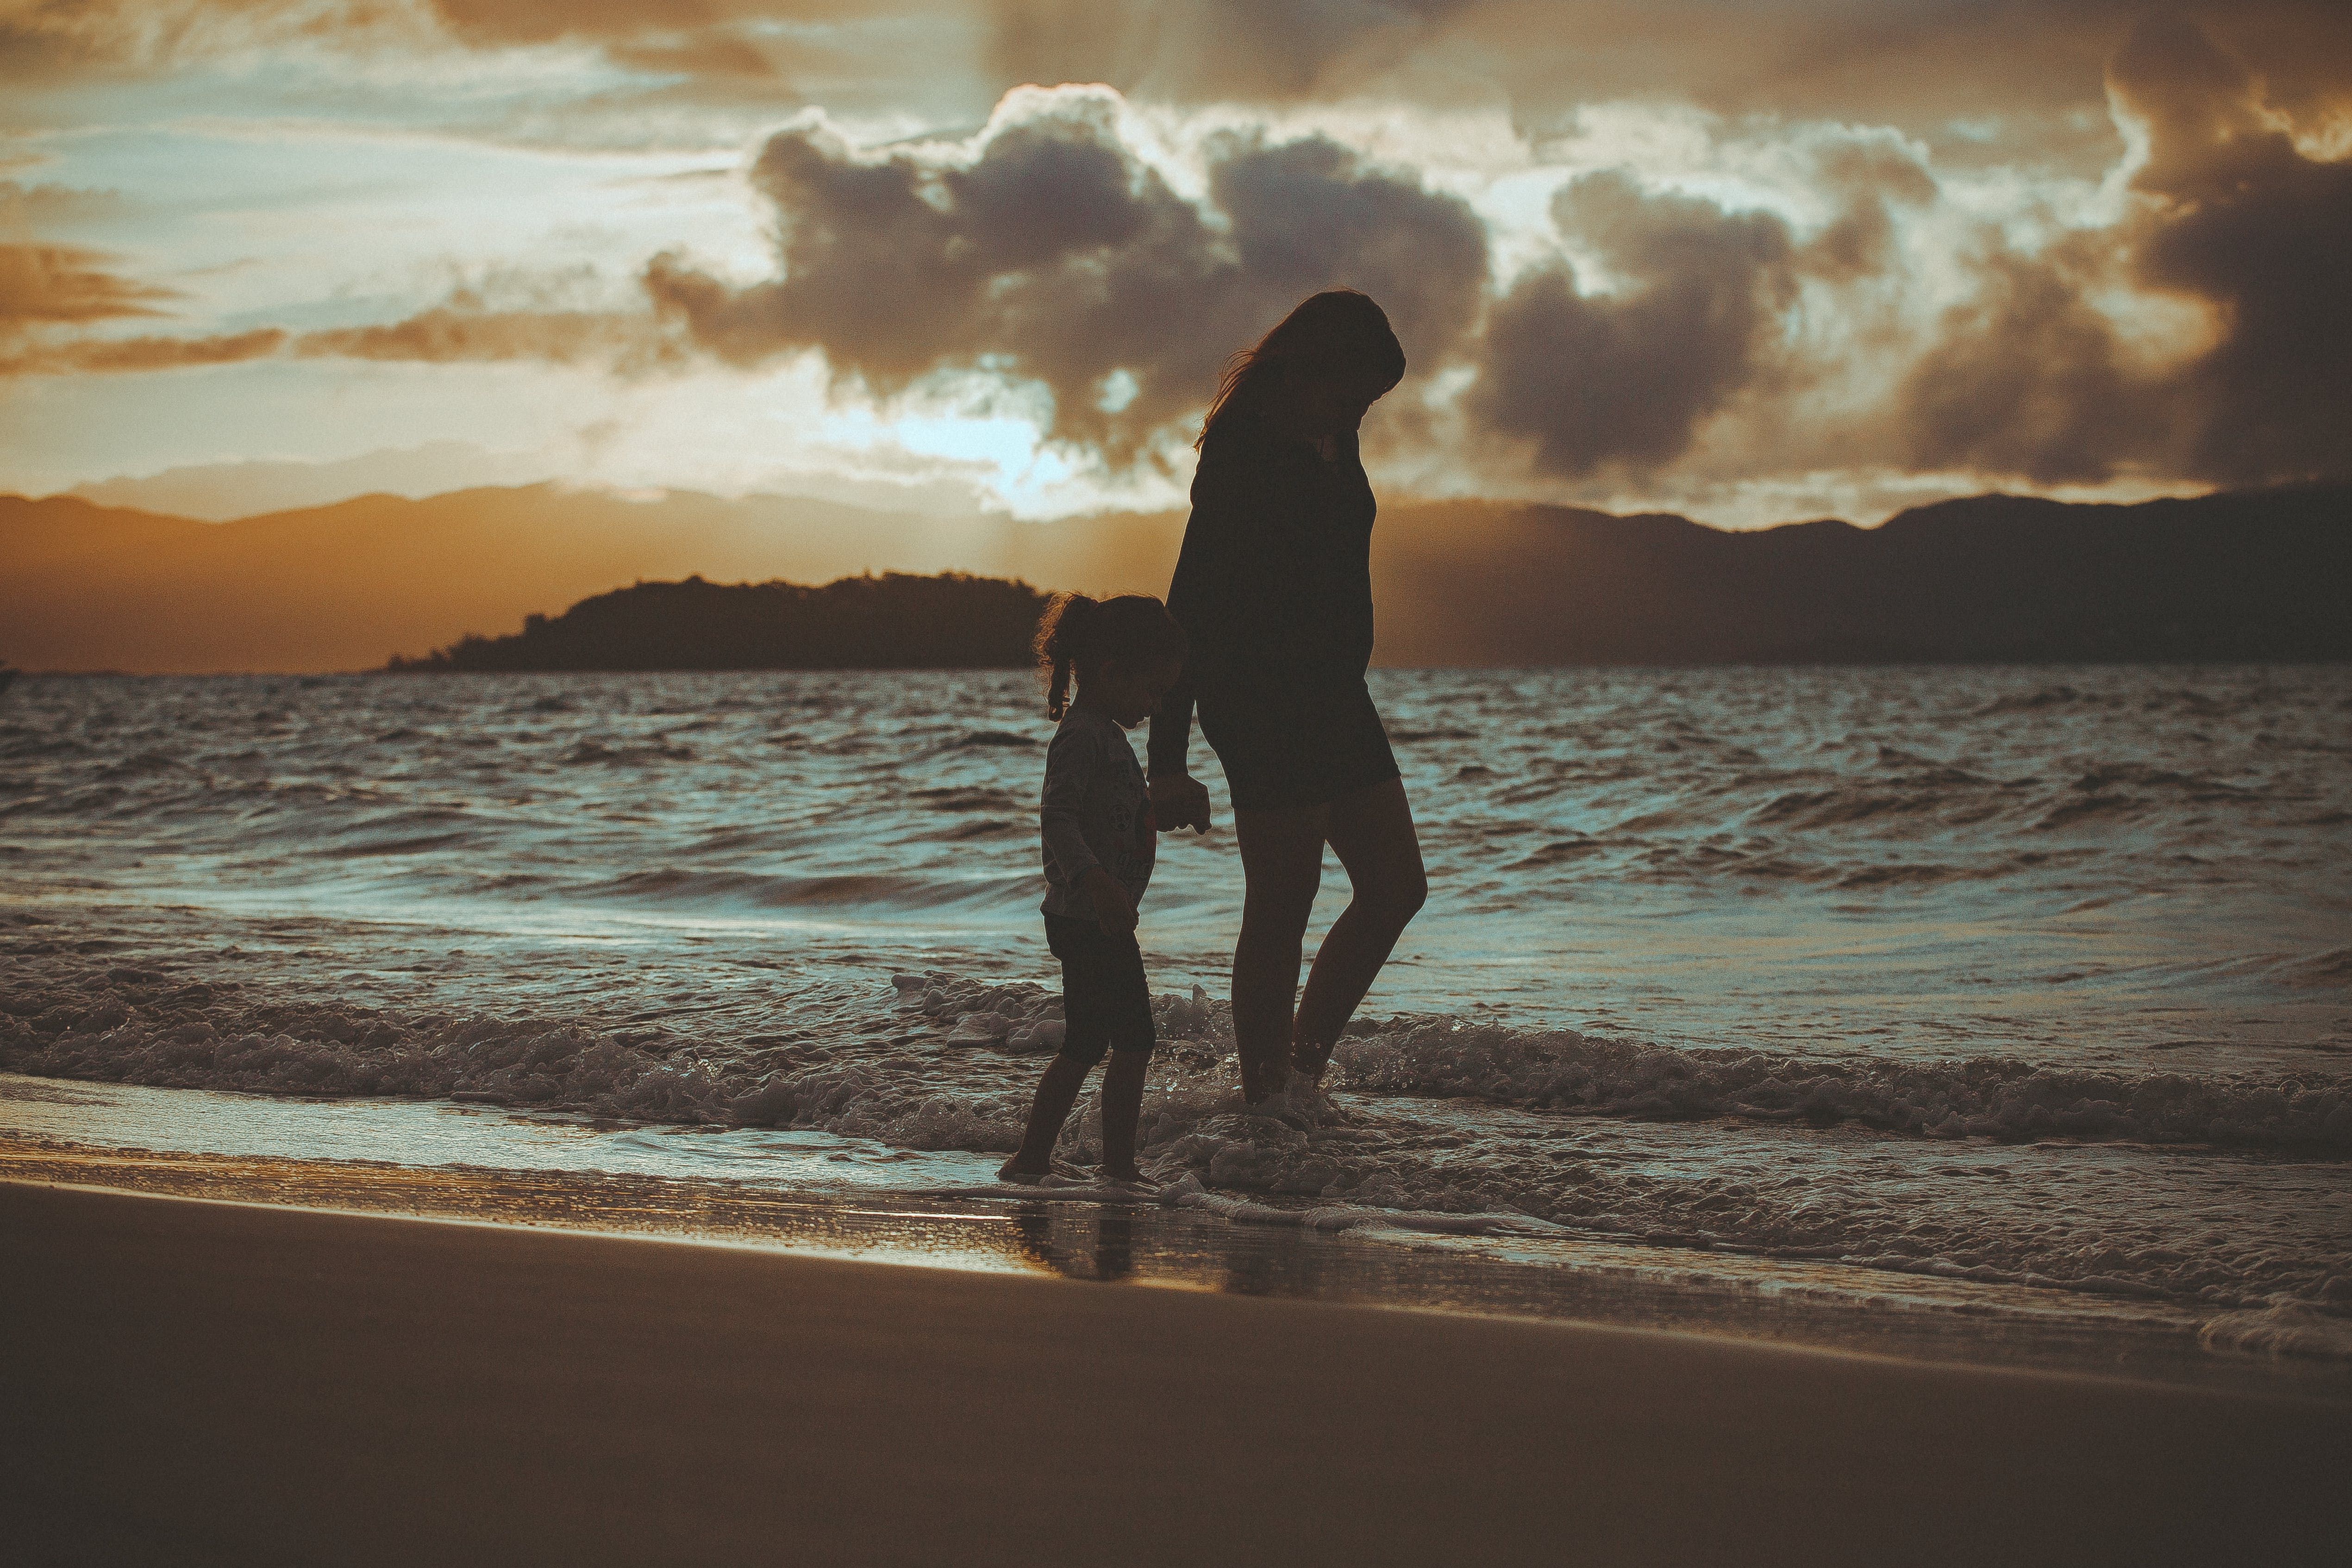 Silhouette Of Woman And Girl Walking On Seashore